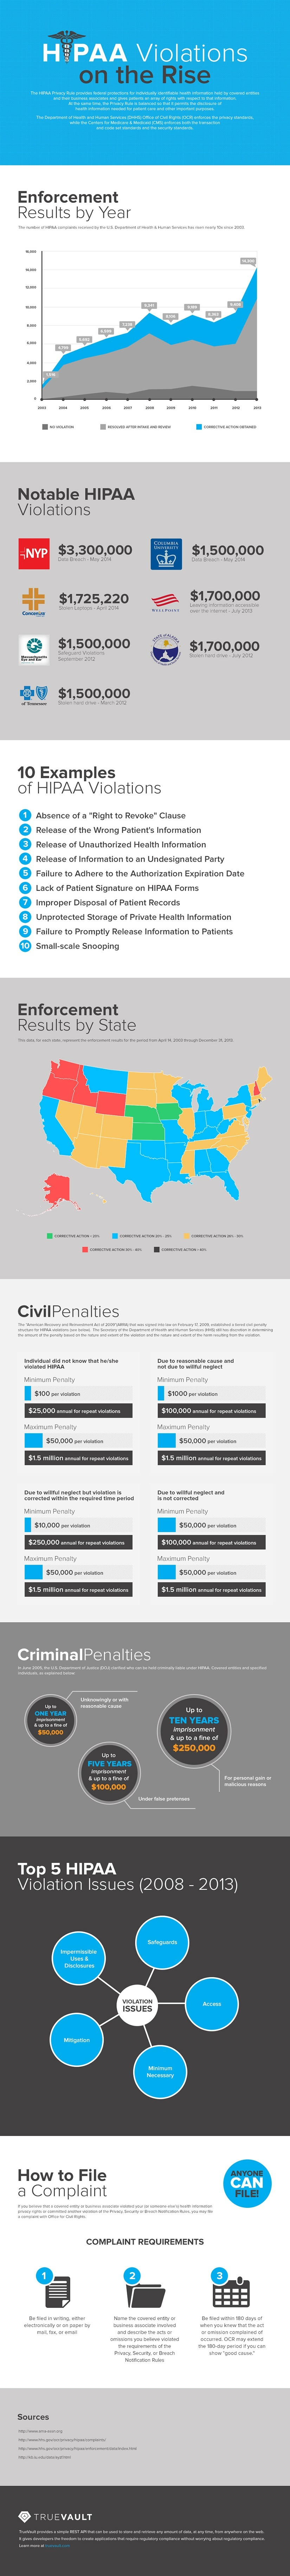 Infographic: The Rise of HIPAA Violations